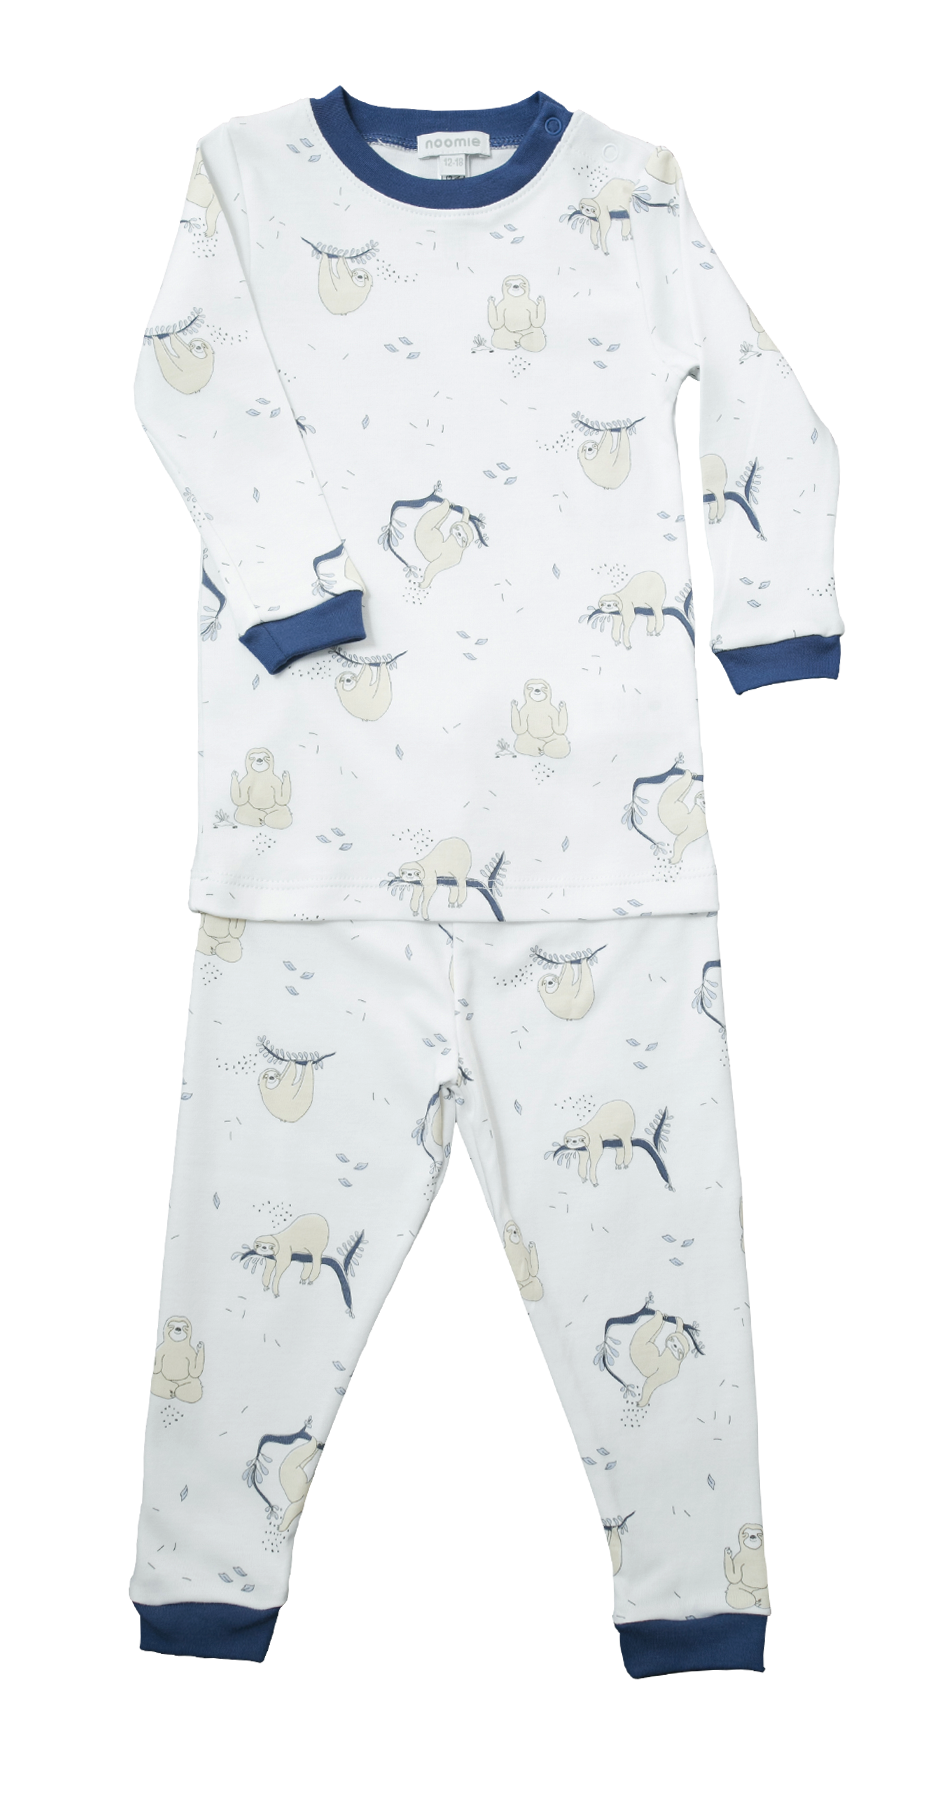 Noomie - Pajama Set - Sloth